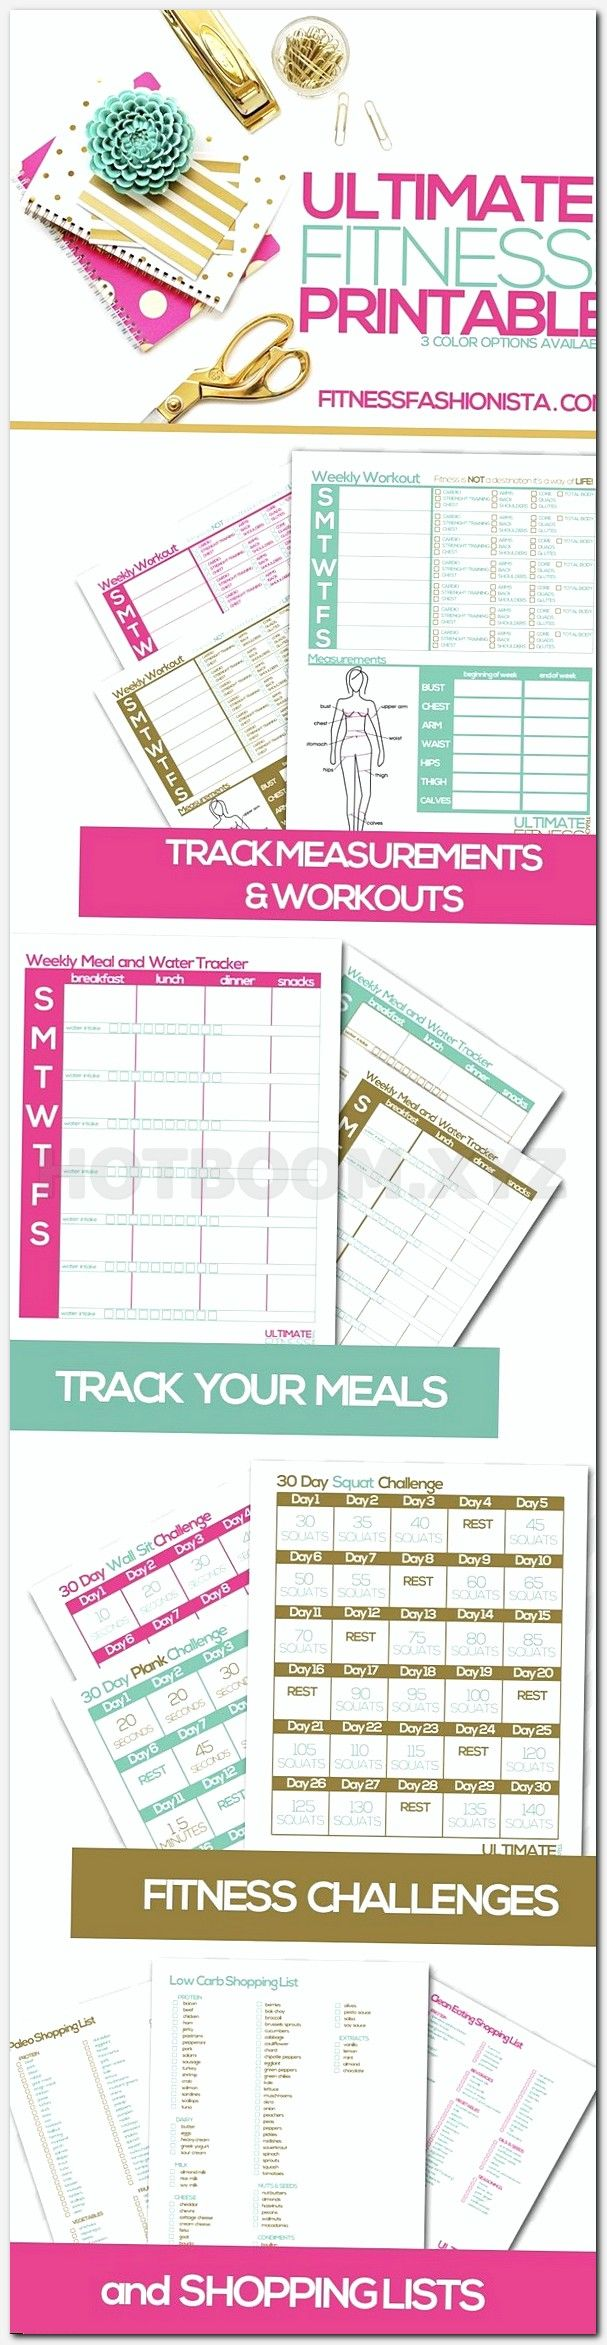 Workout plan to lose weight fast at home full meal plan to lose workout plan to lose weight fast at home full meal plan to lose weight nvjuhfo Image collections